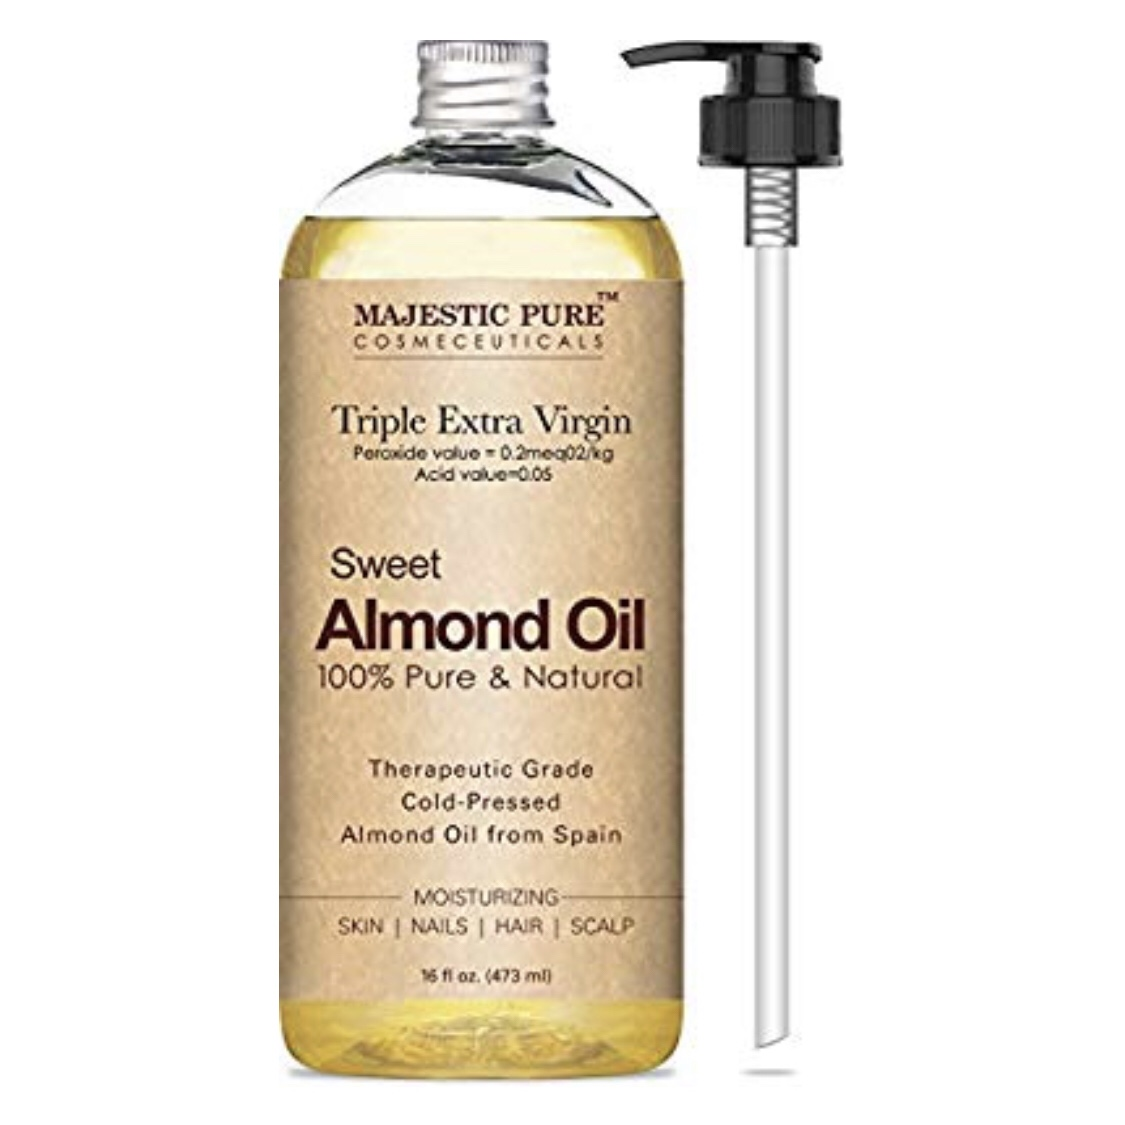 MAJESTIC PURE Sweet Almond Oil - - pure, triple grade A, cold pressed and therapeutic grade almond oil- contains high levels of protein which makes it a prime ointment or hydrating mask for your hair- rich in vitamins and antioxidants, it quickly absorbs and deeply penetrates to nourish and hydrate dry skin- use it right out of the shower before drying off to lock in moisture